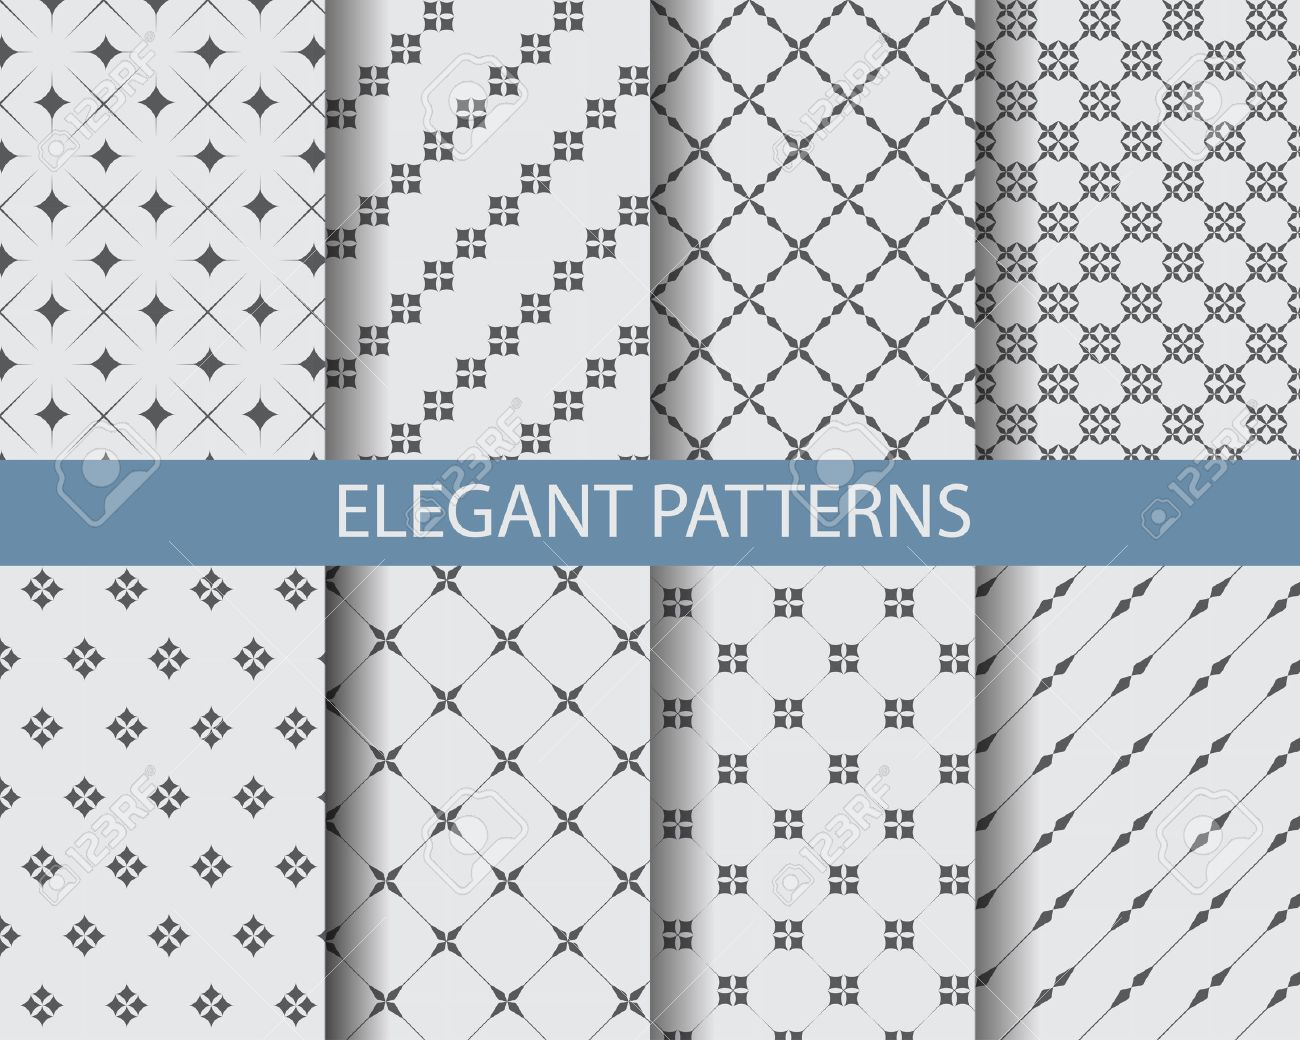 8 different classic black and white patterns endless texture can be used for wallpaper